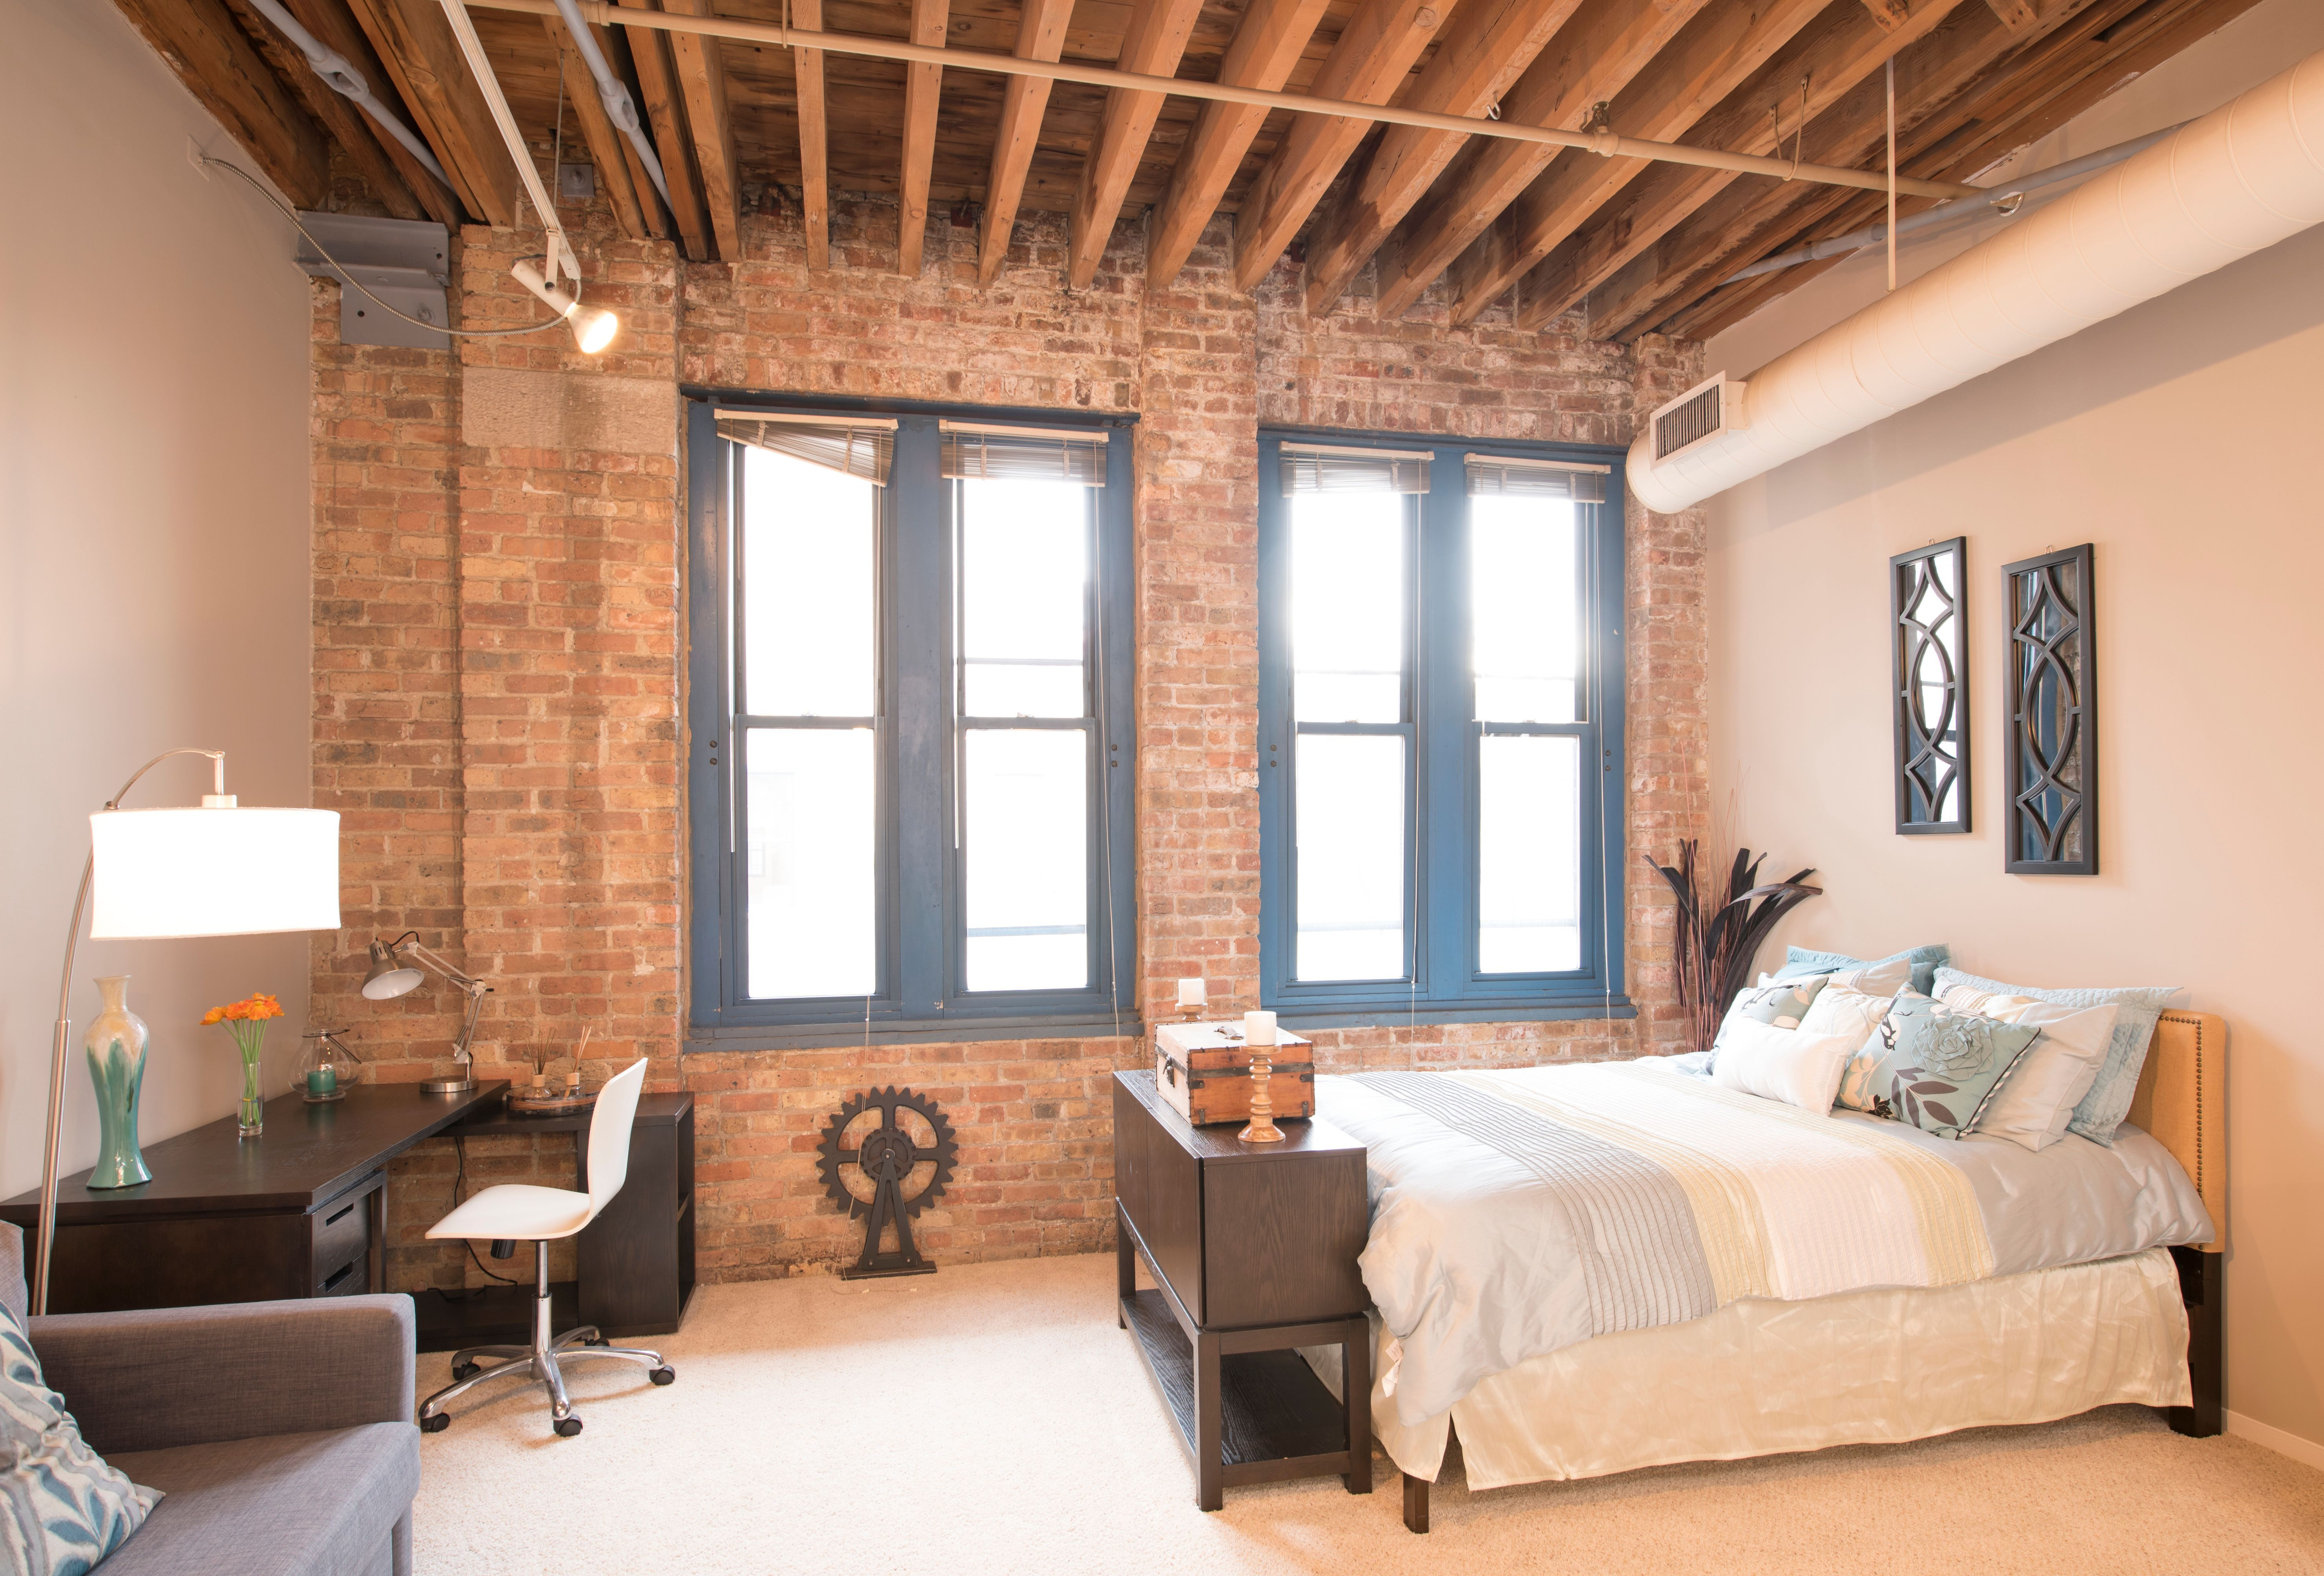 26 Bedrooms Ideas Apartment Chicago Apartment Apartments For Rent